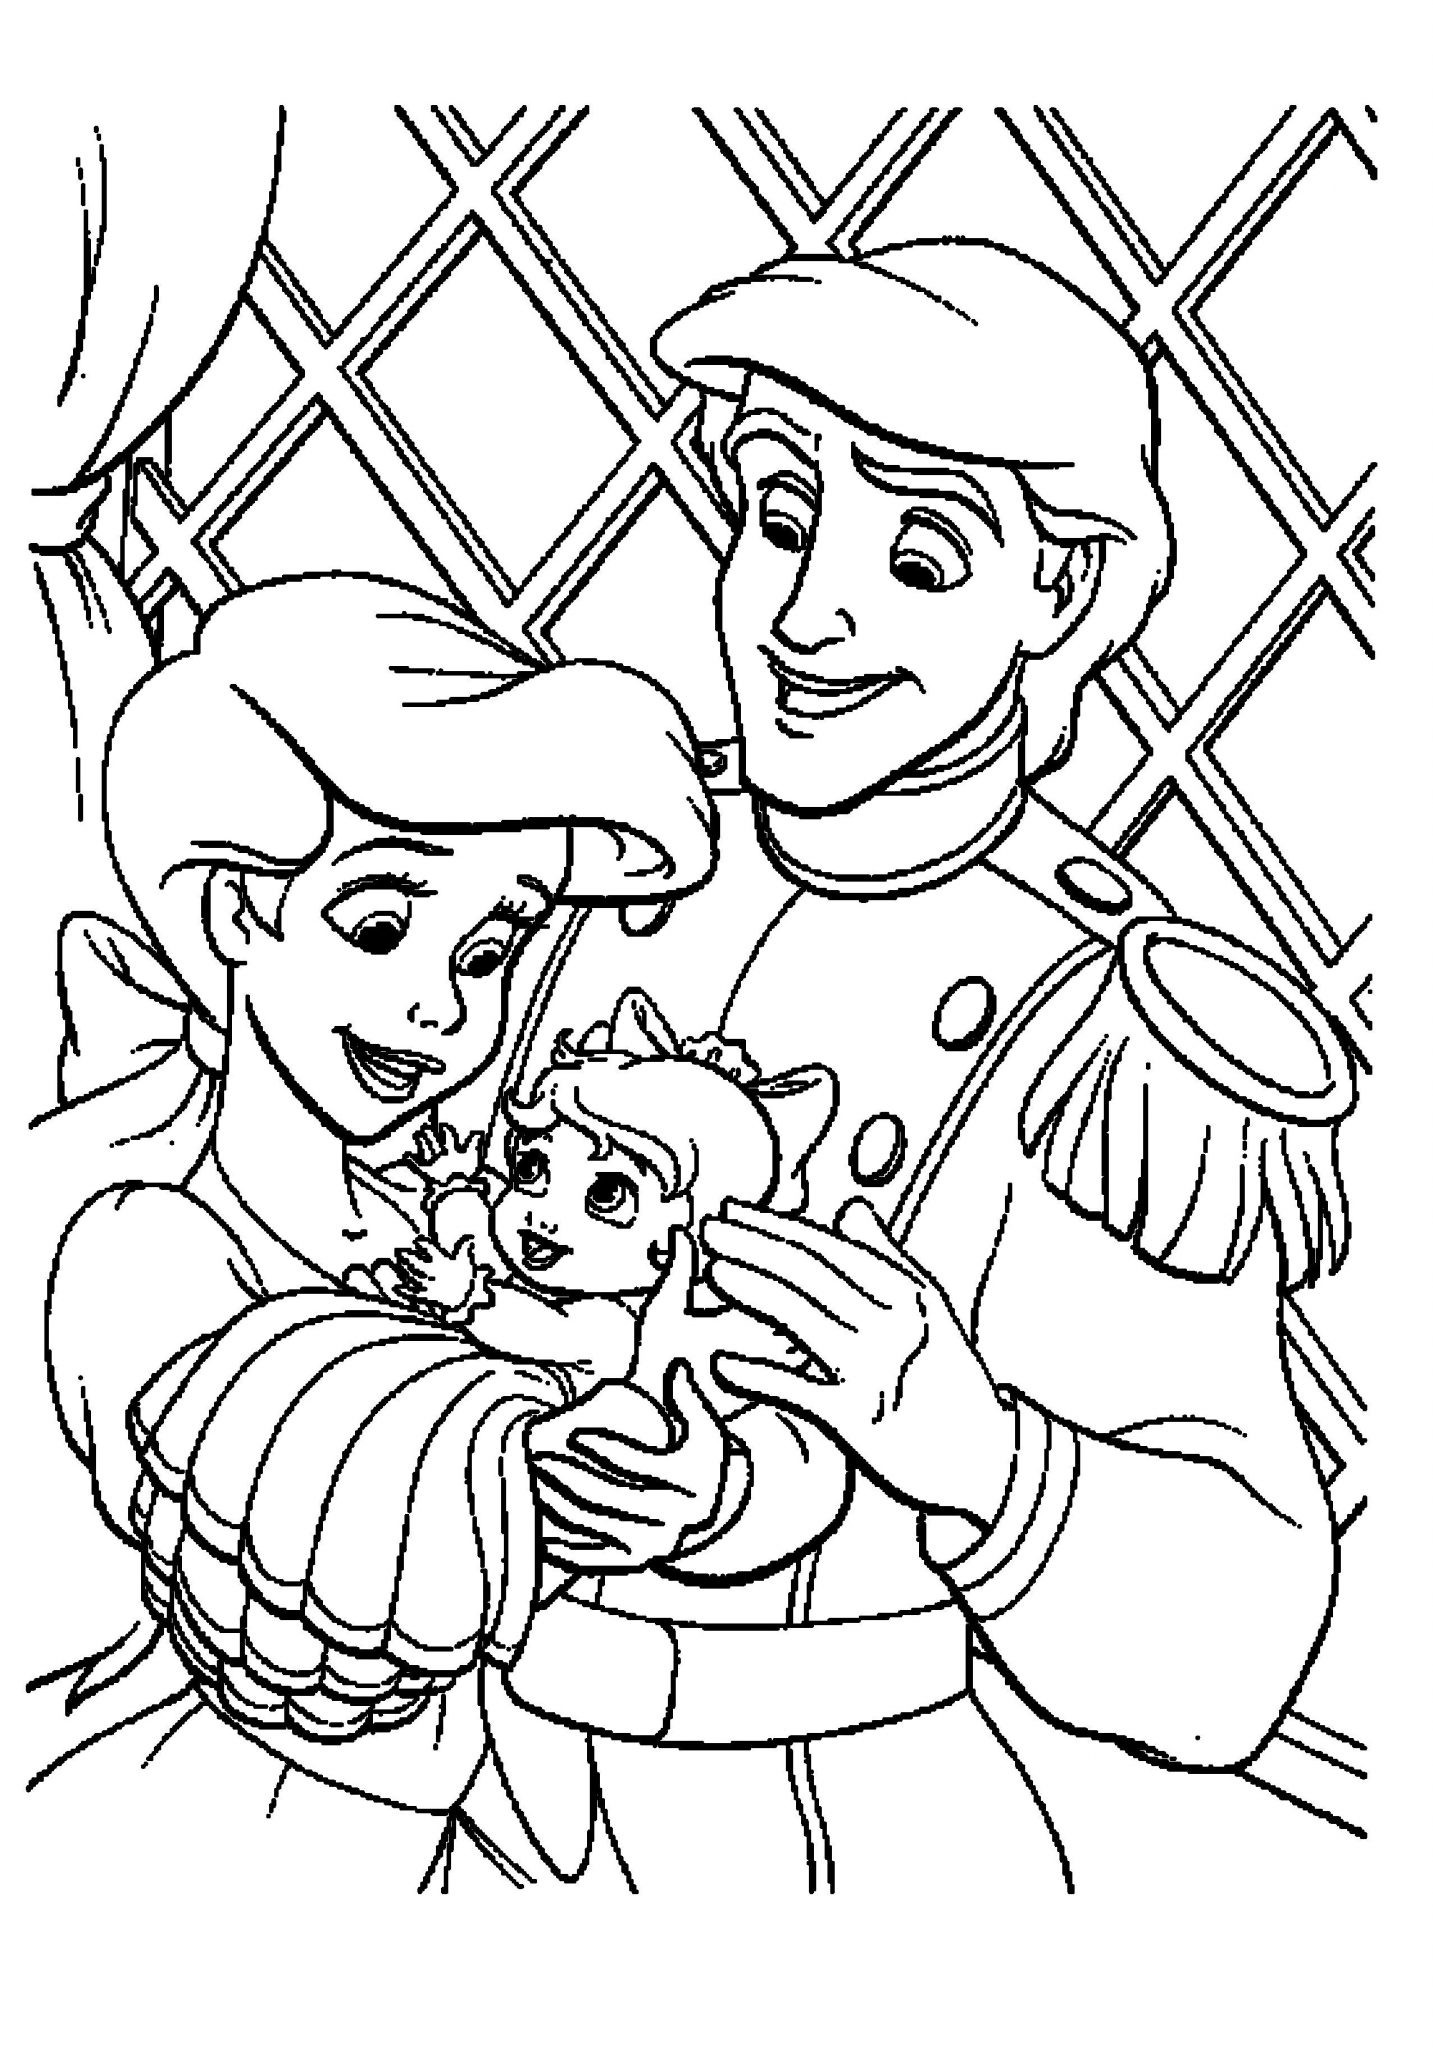 ariel little mermaid coloring pages family prince and - Mermaid Coloring Sheets